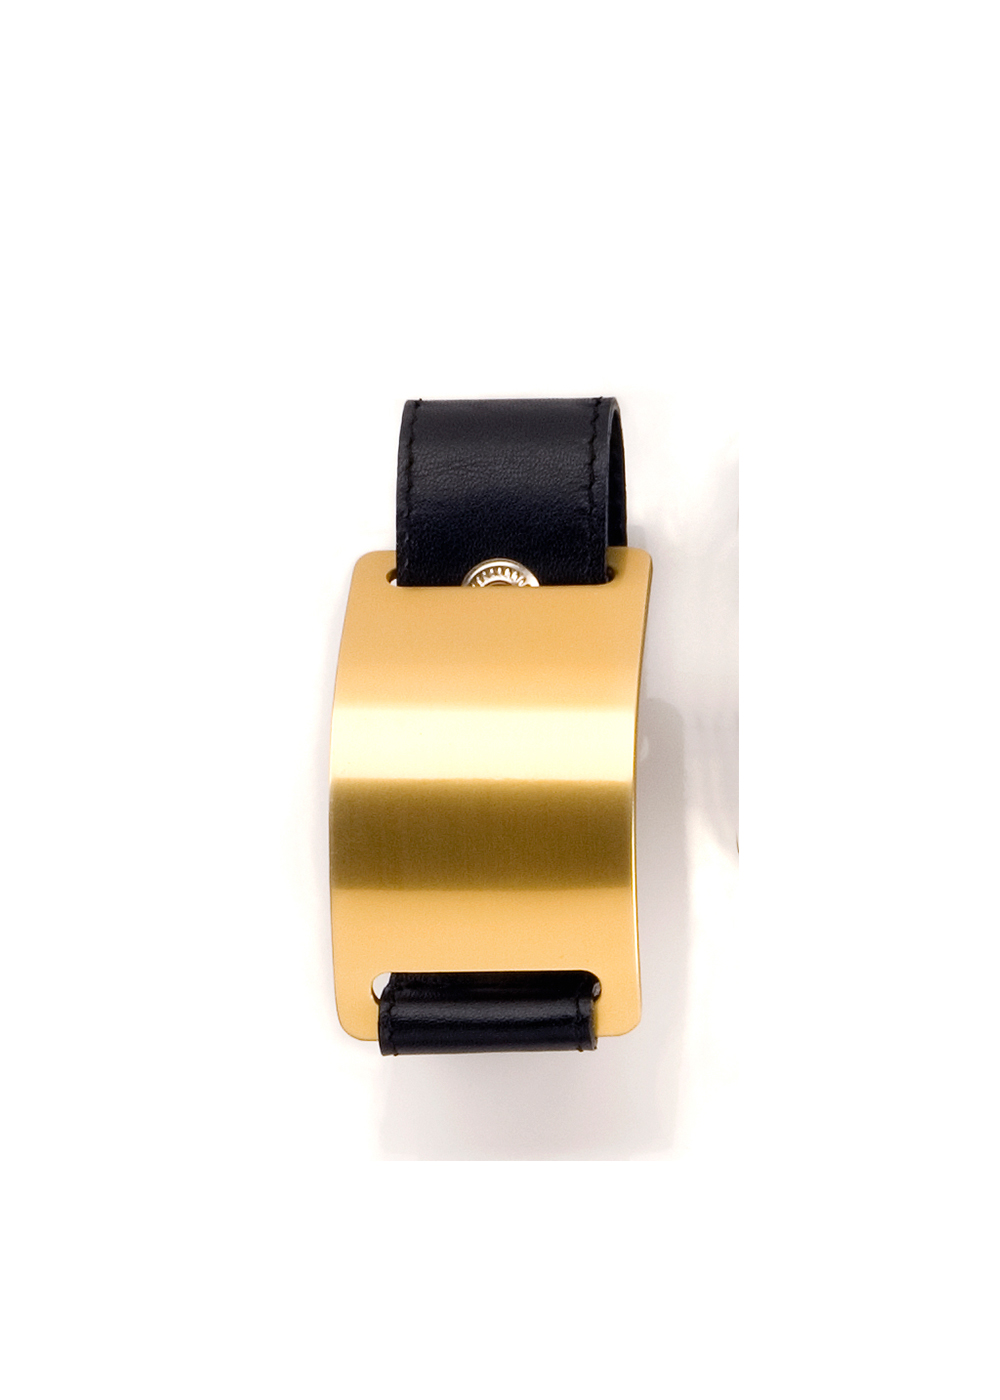 Plain Wrist Buckle, gold